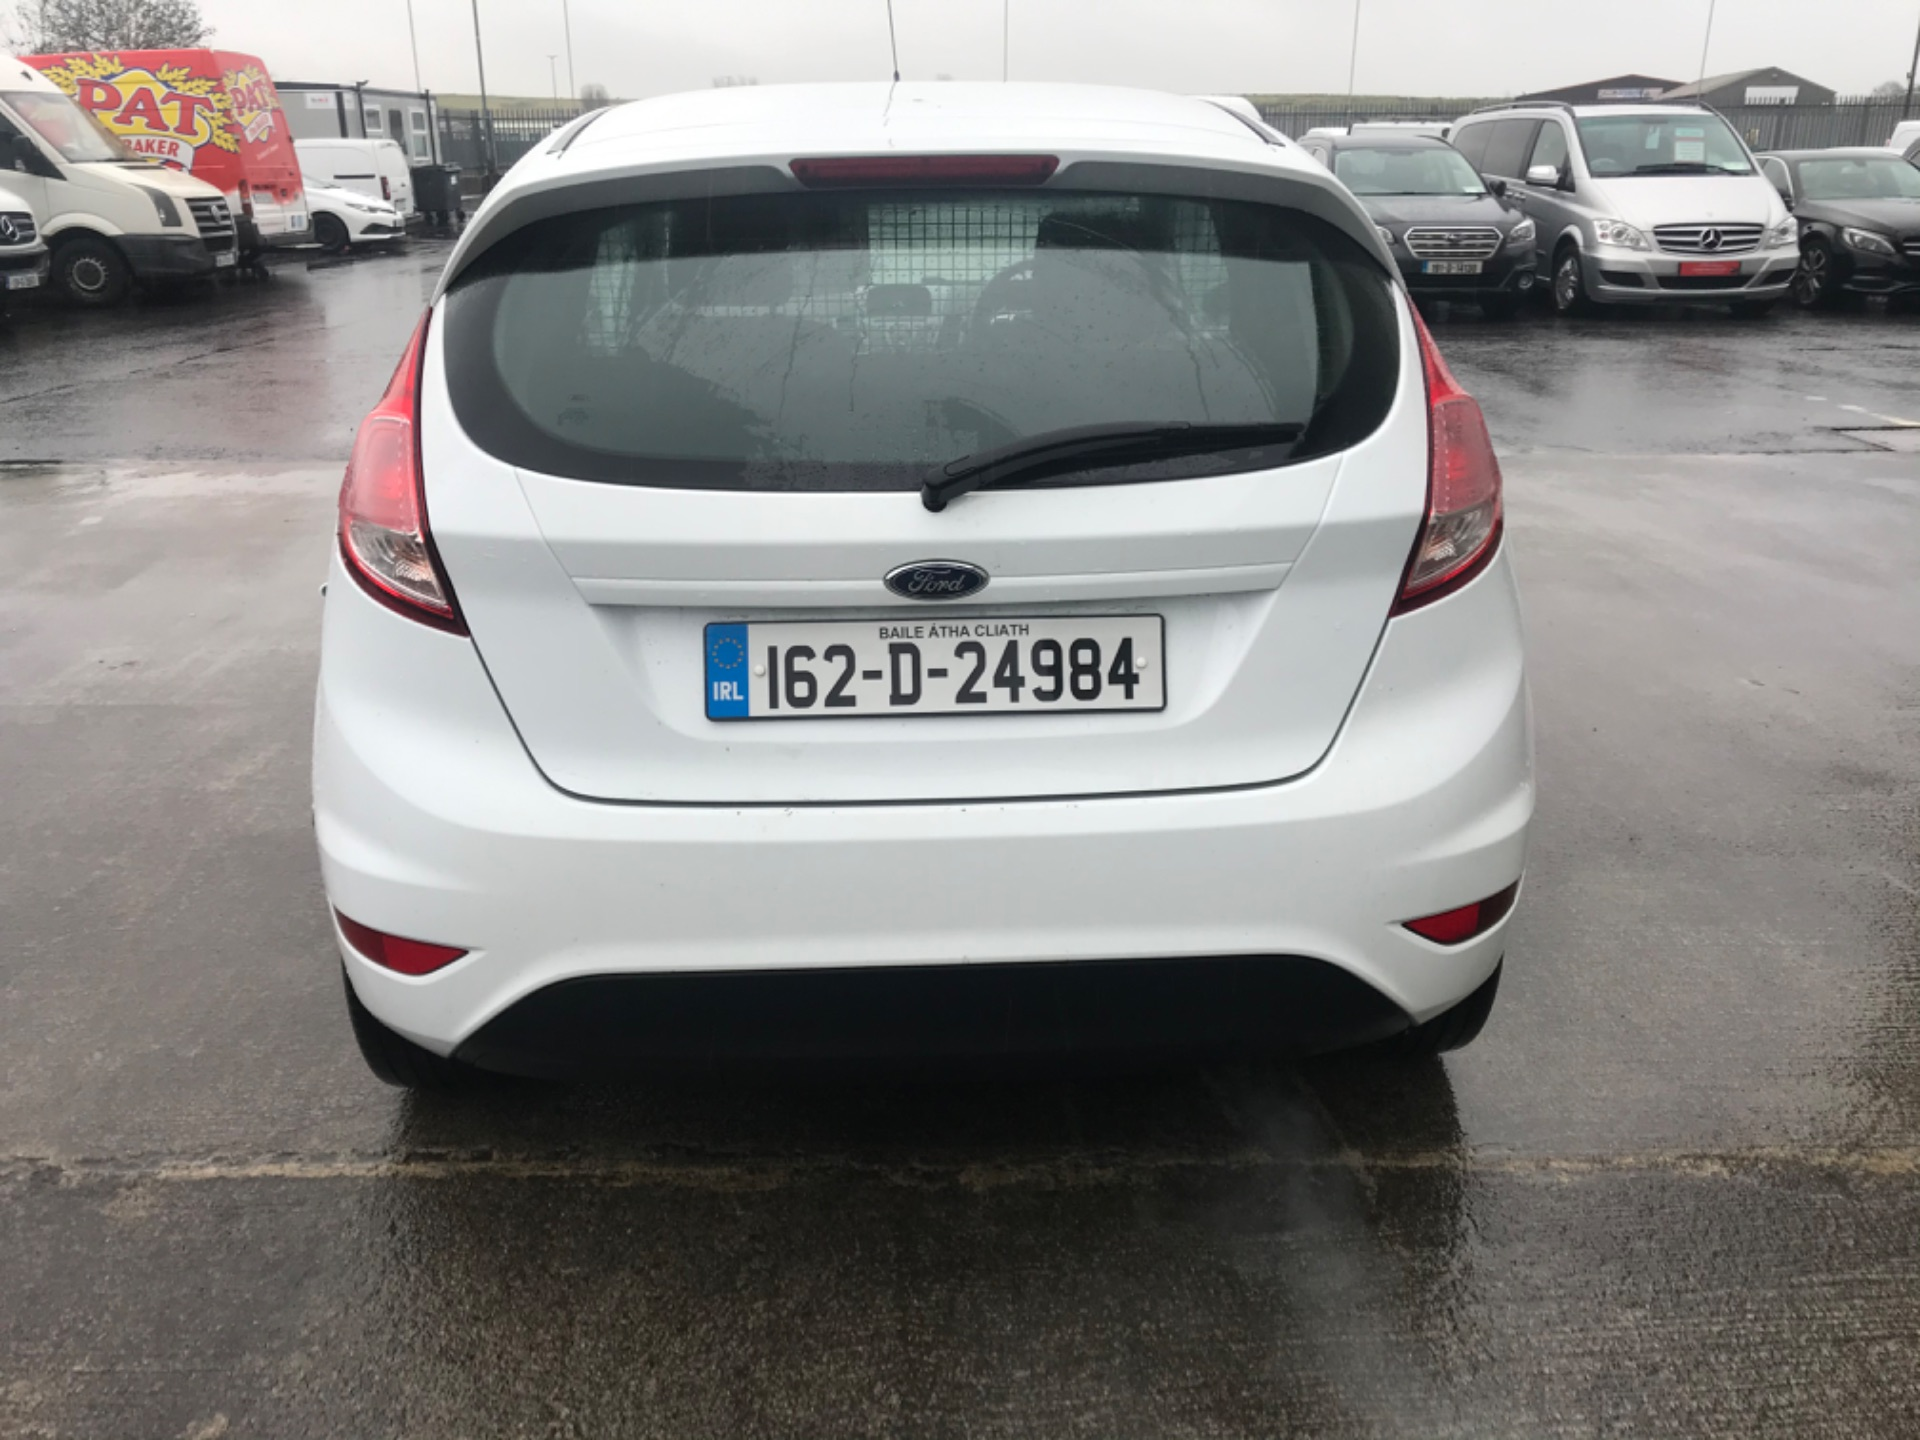 2016 Ford Fiesta BASE TDCI (162D24984) Image 5